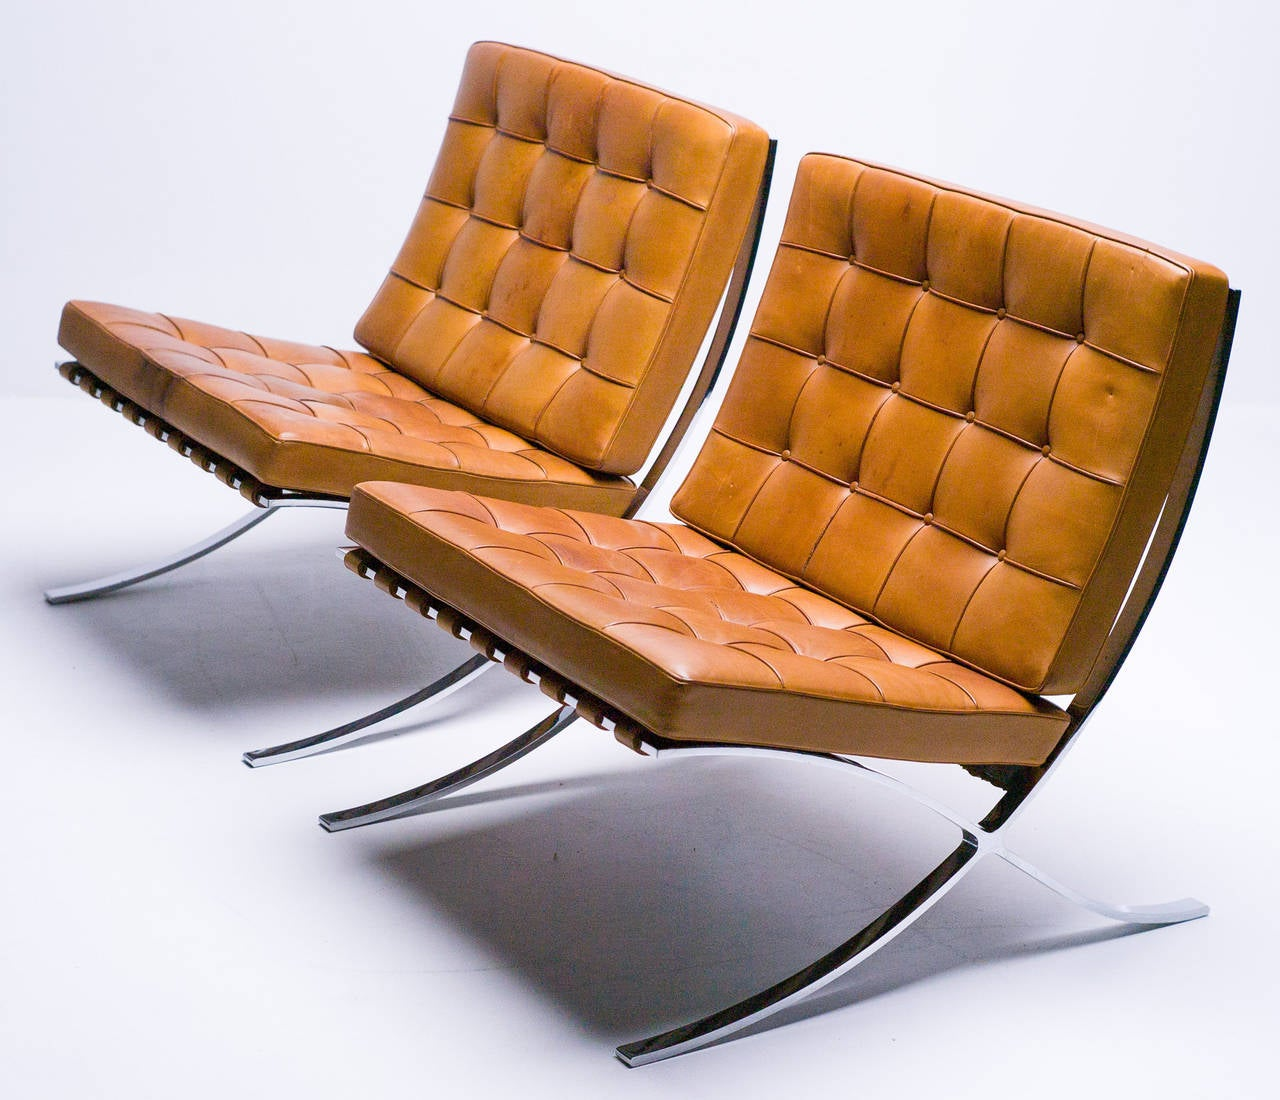 barcelona chair leather swivel chairs uk in saddle by mies van der rohe